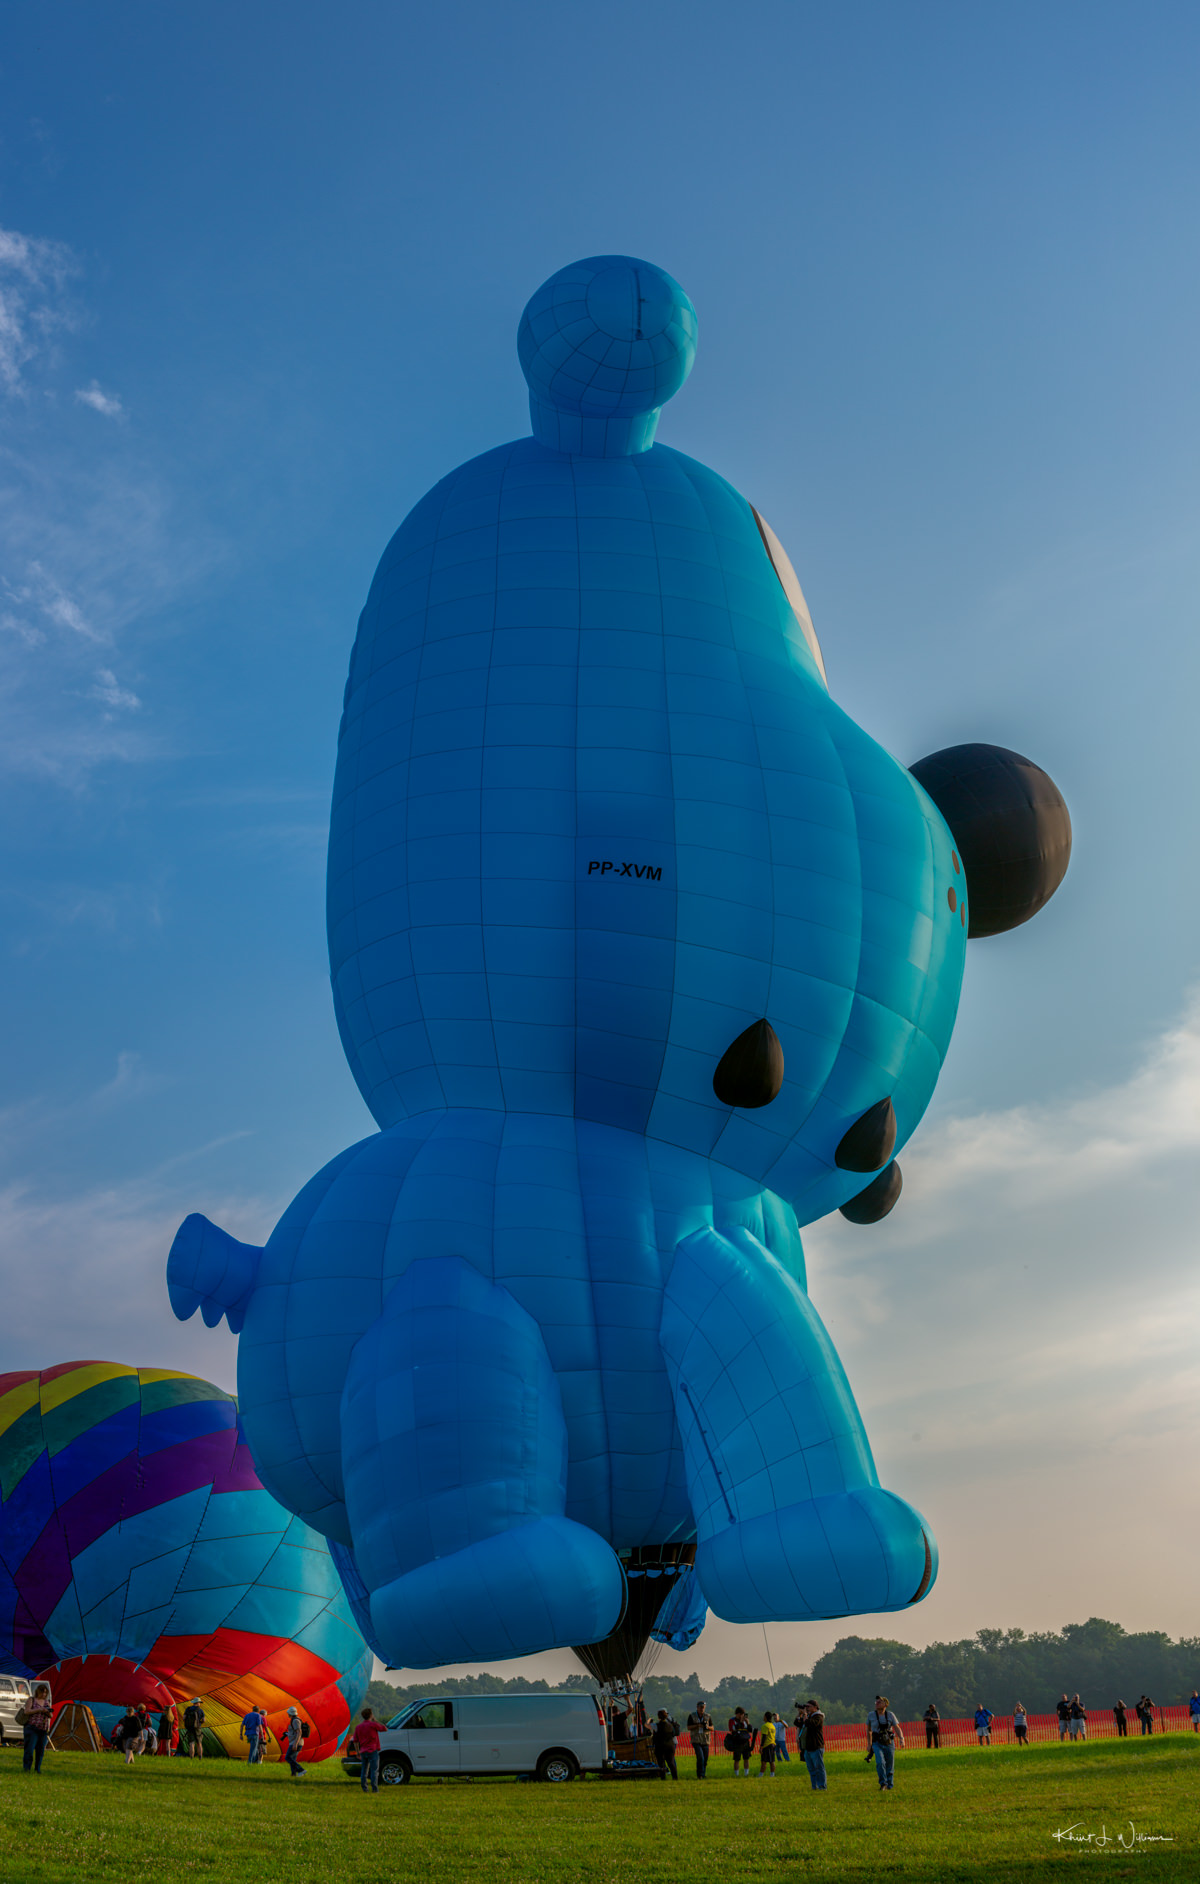 QuickChek Festival of Ballooning pre festival Media Launch Canon EOS 5D Mark III 20180727 6986 Edit 3 blog